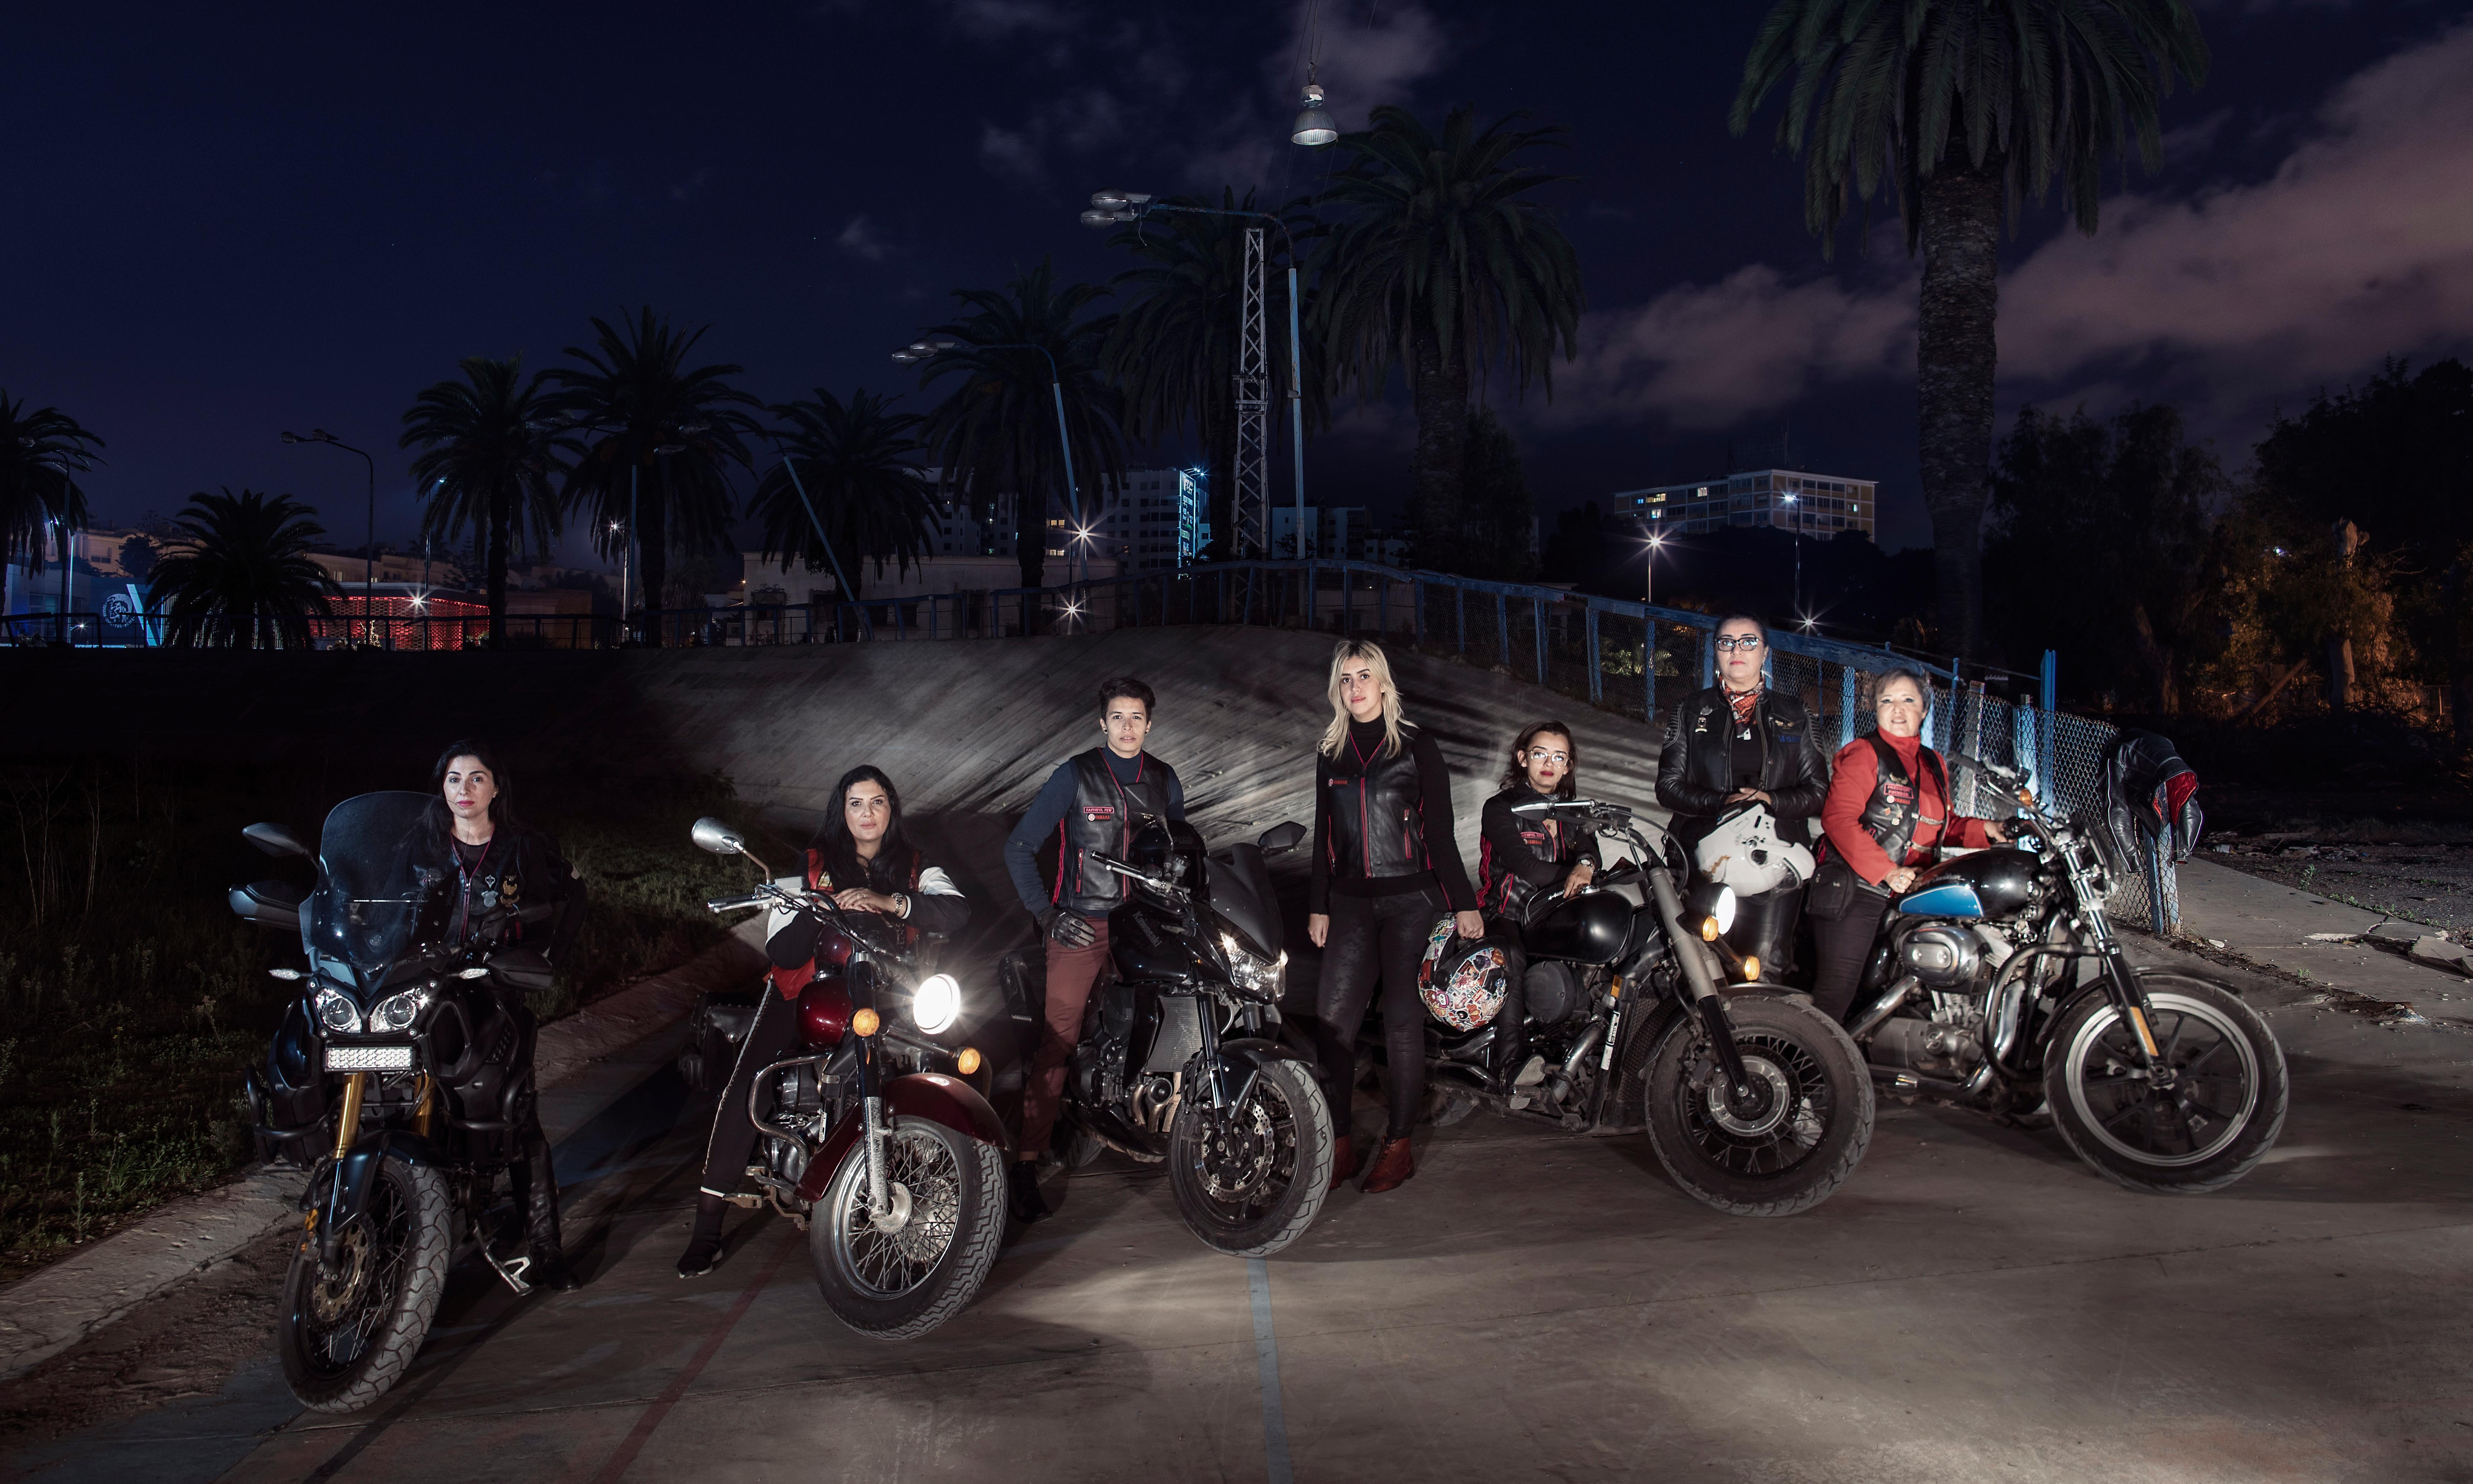 A Muslim woman's place? In Casablanca, it could be burning rubber on a Harley…